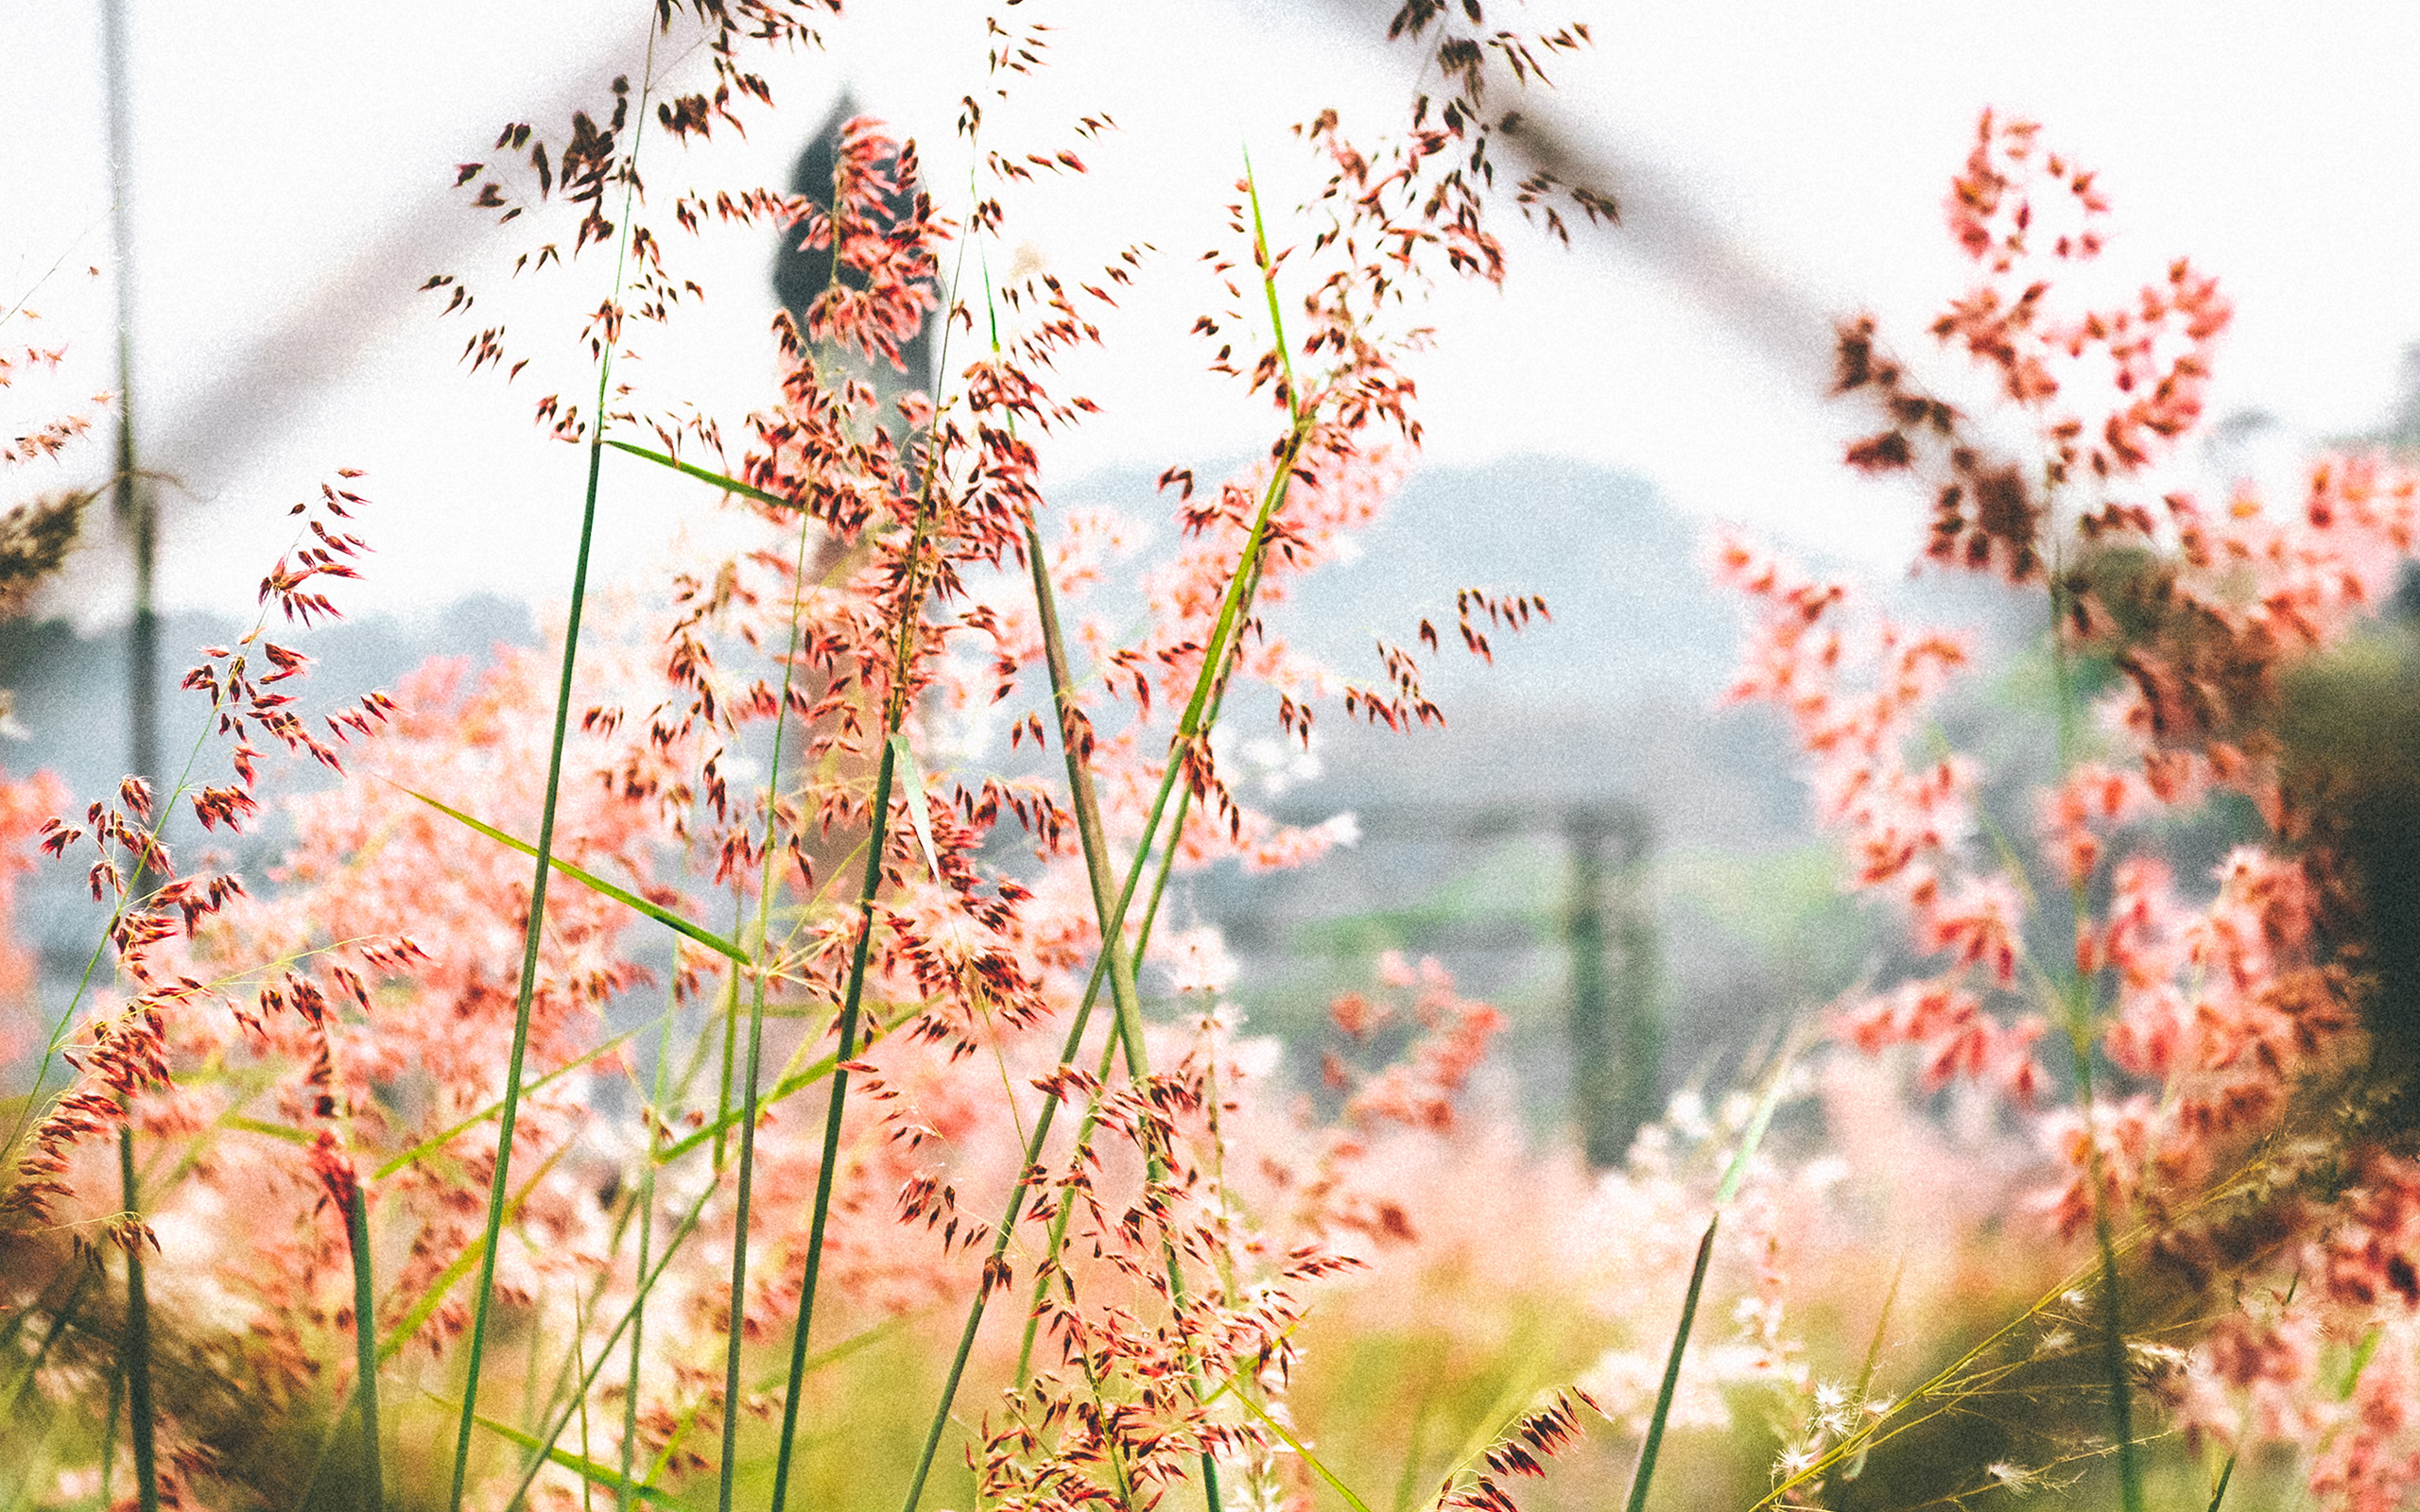 nw59-day-flower-nature-bokeh-wallpaper